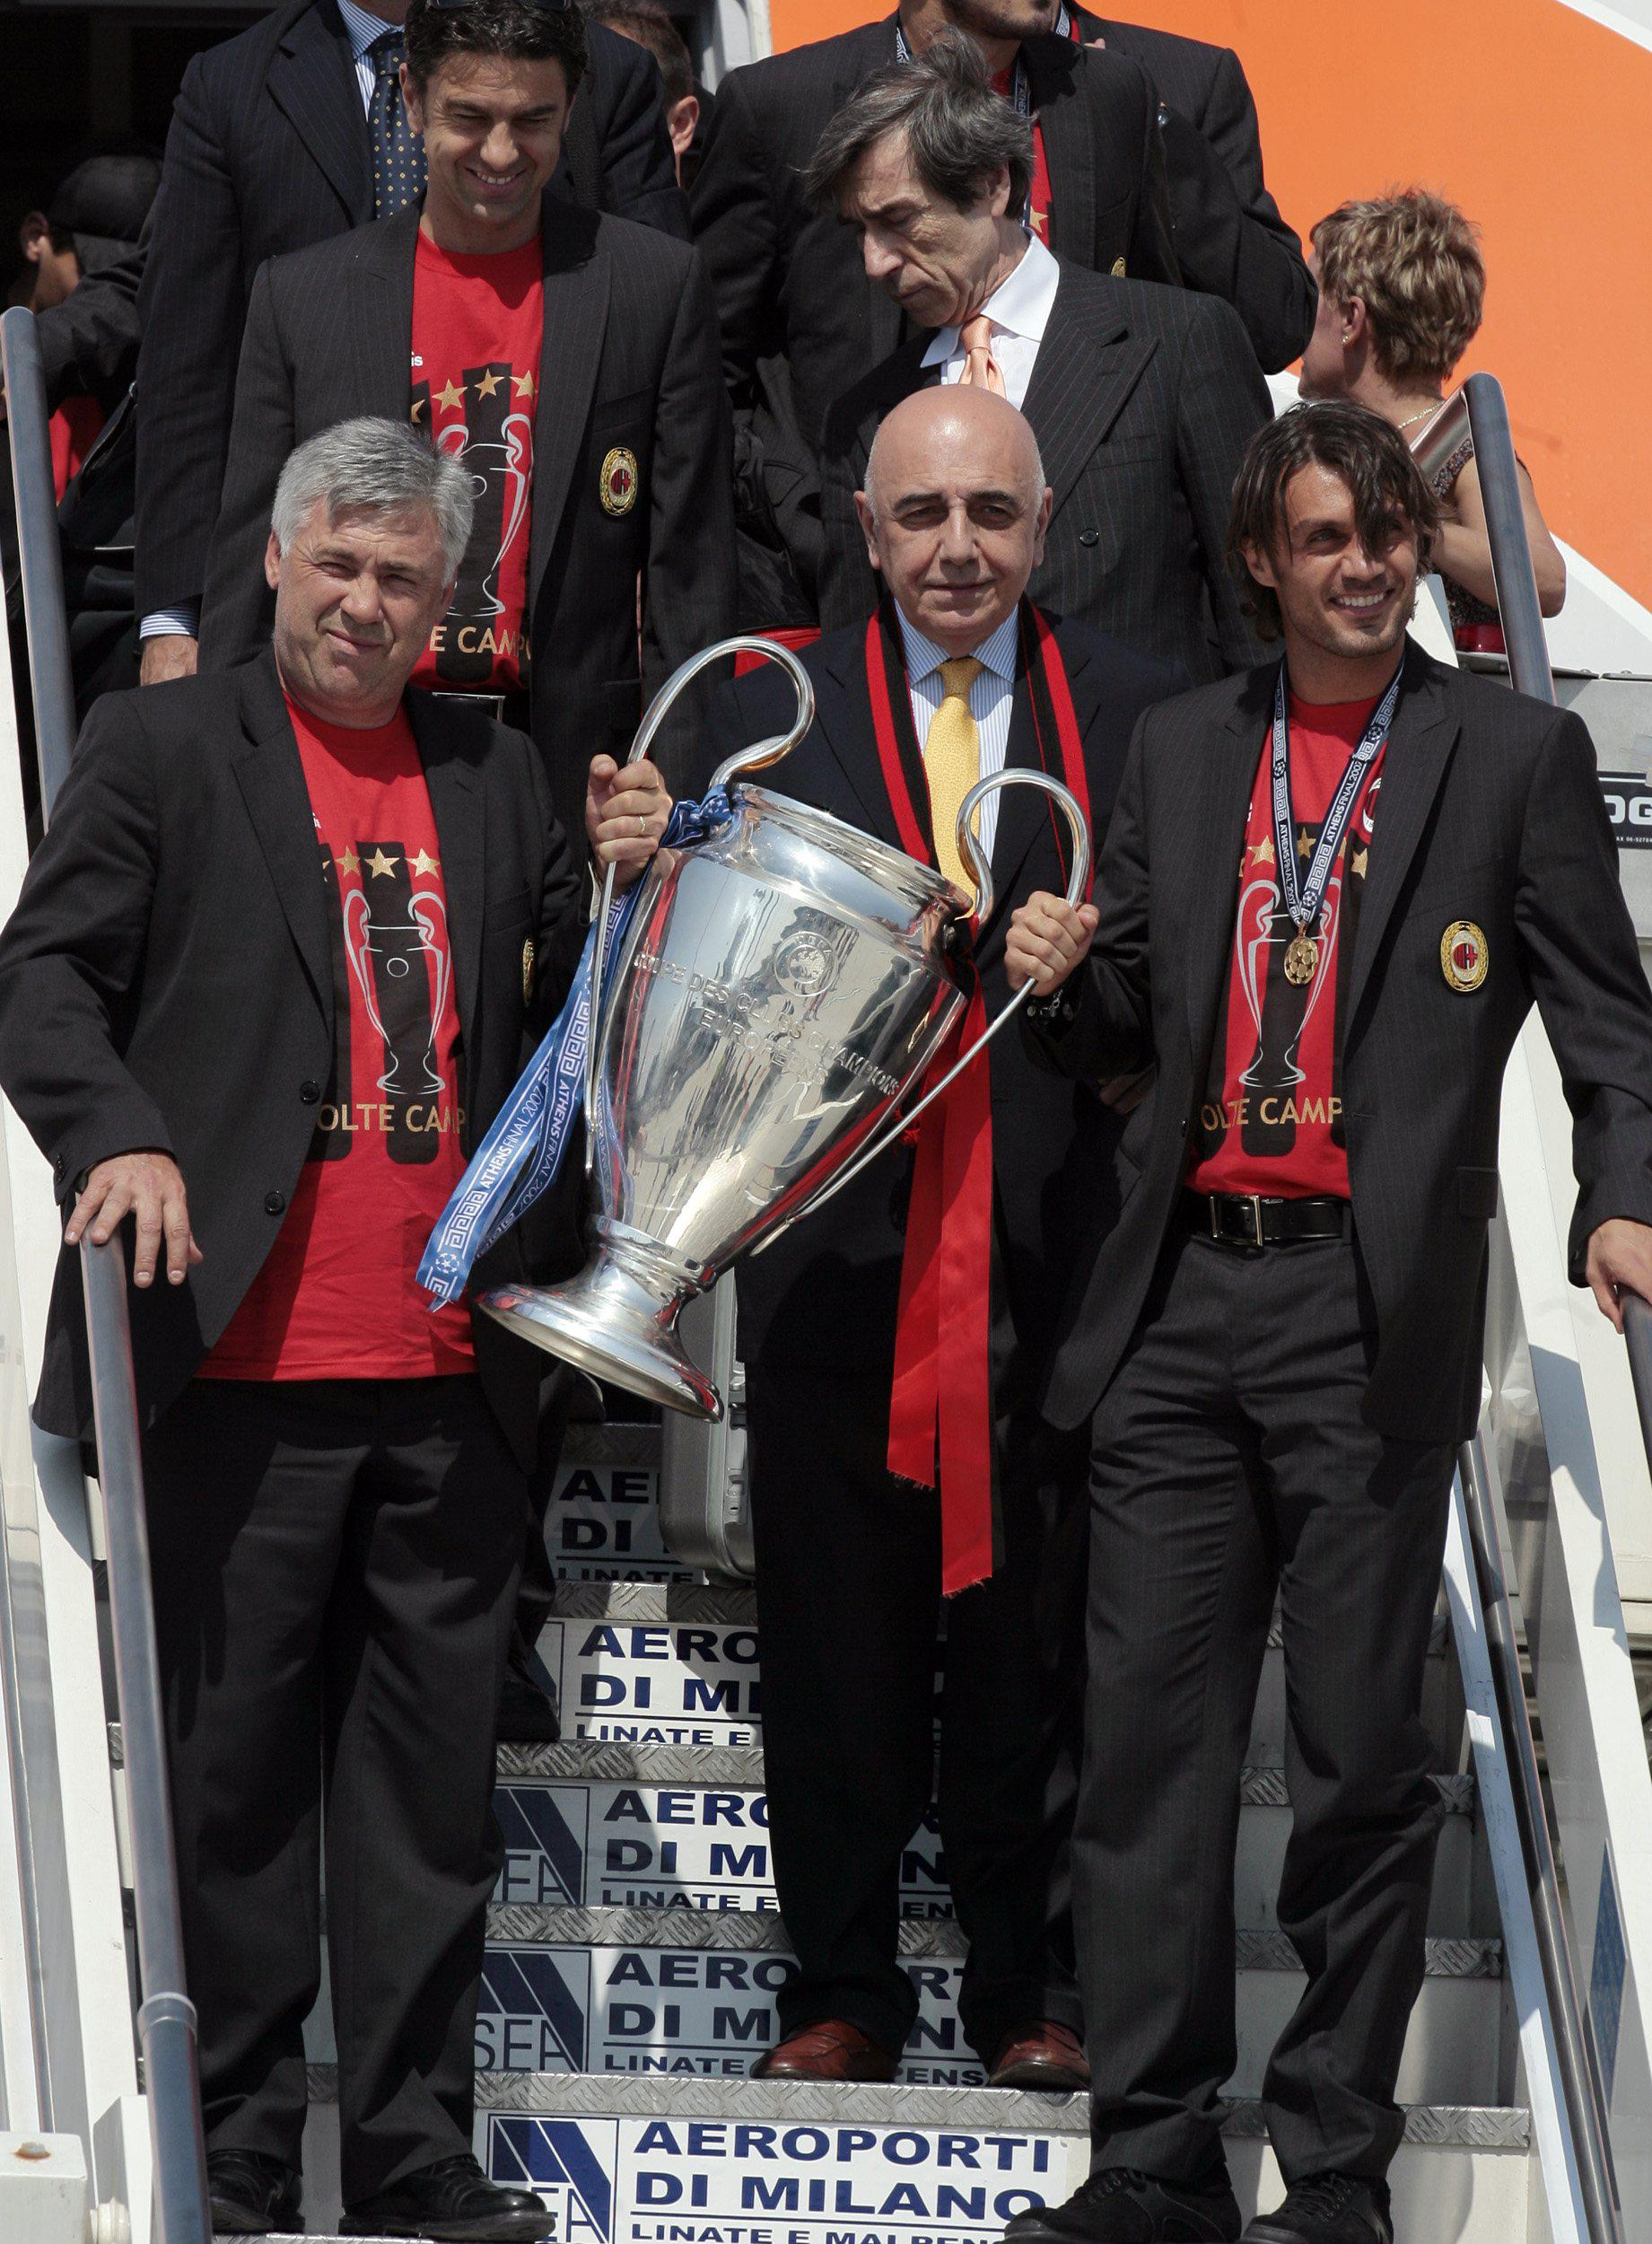 Ancelotti and Maldini certainly know how to win together